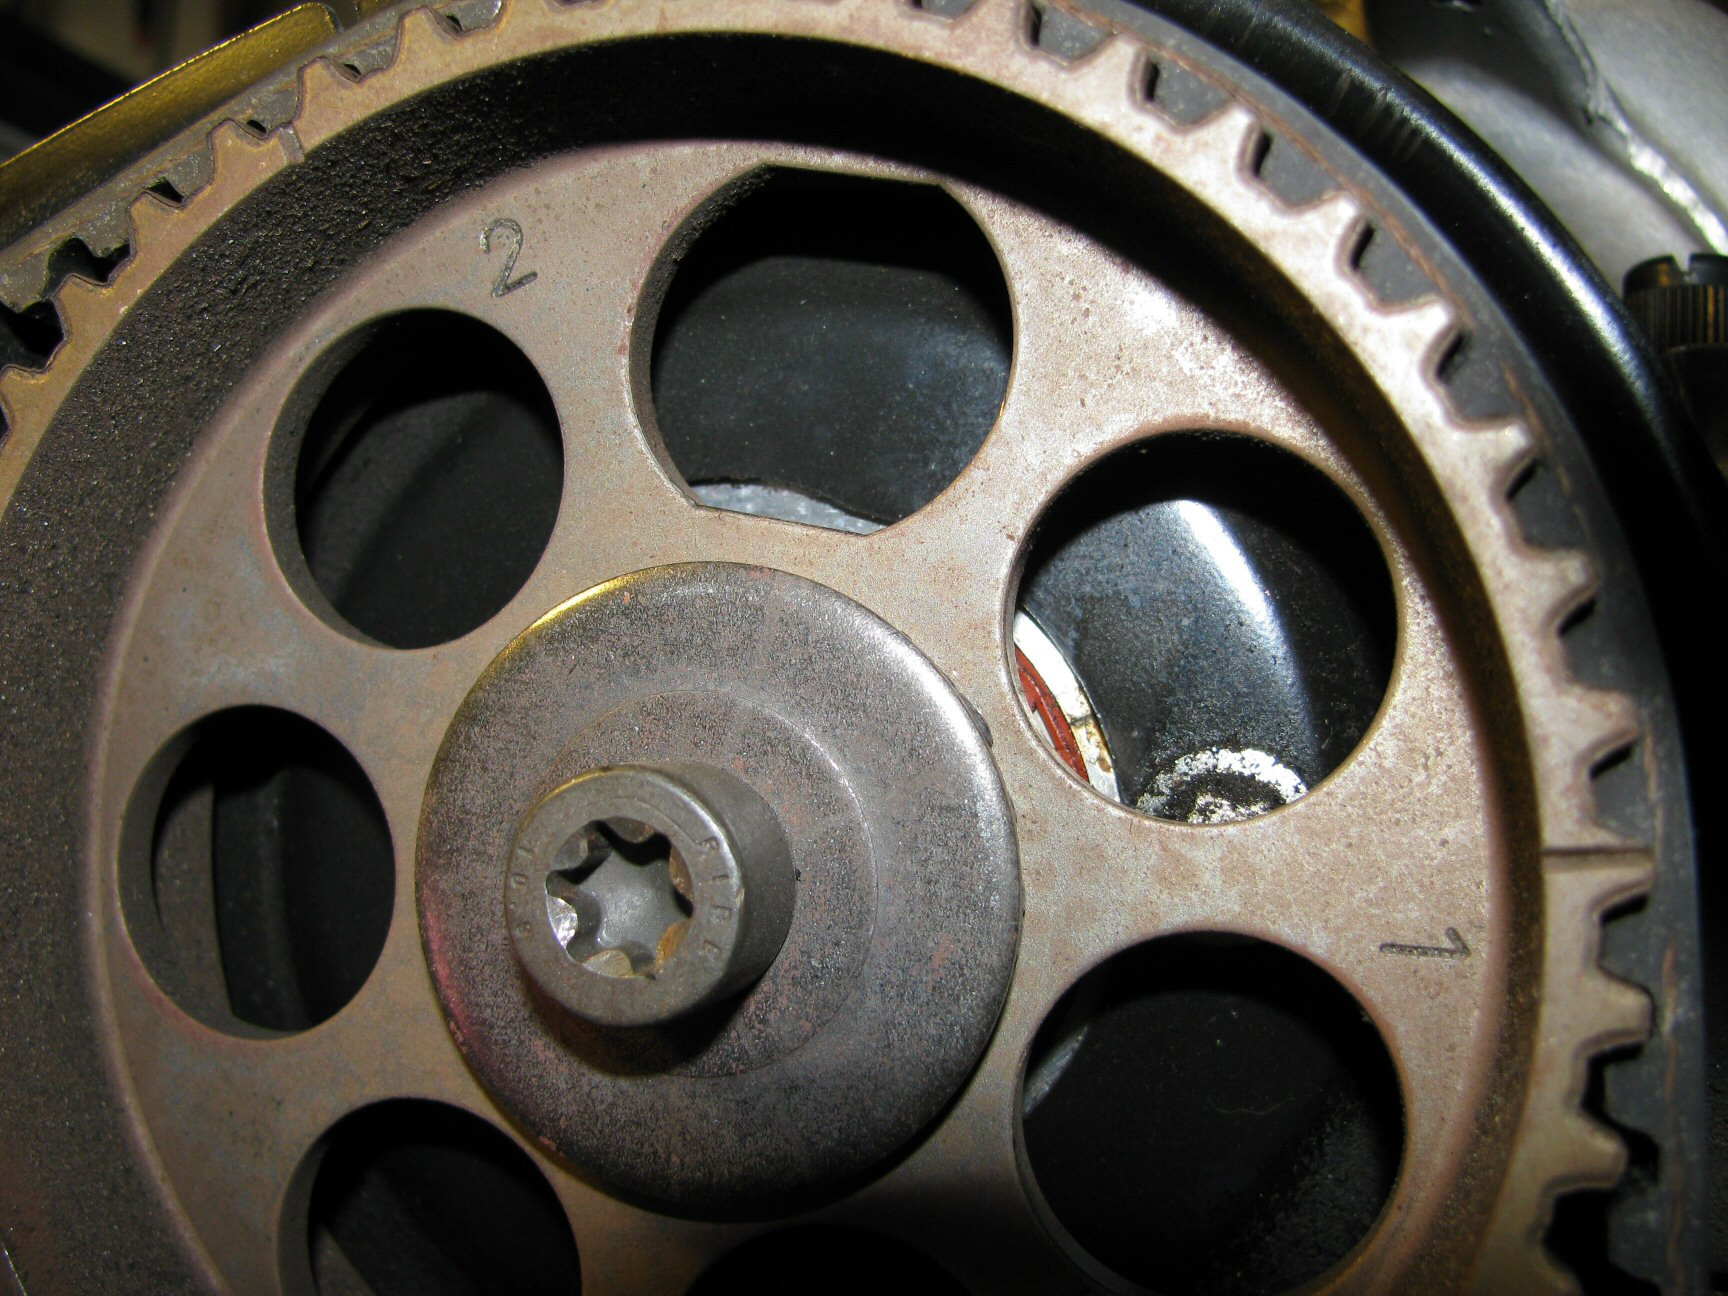 Camshaft pulley 2 aligned with notch in backing tin.